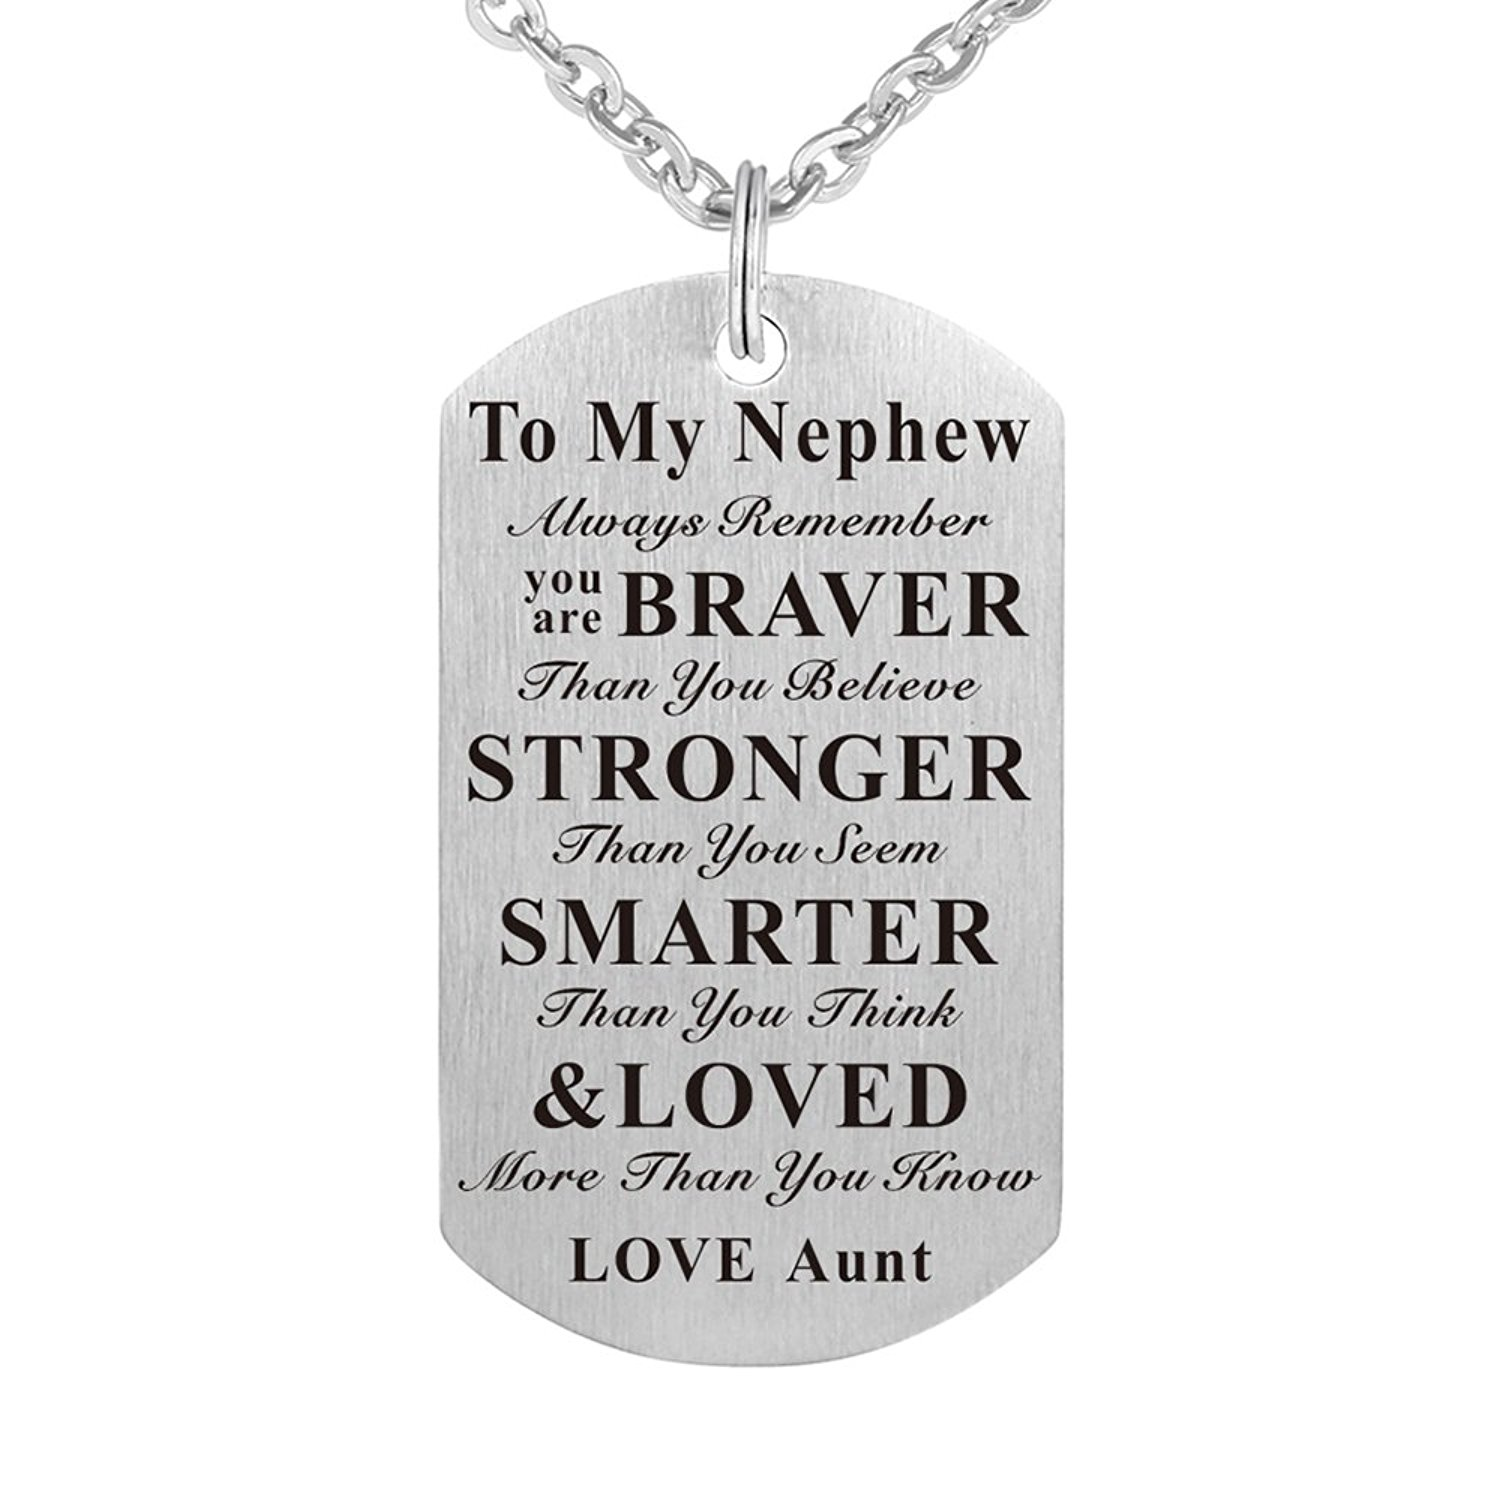 NEWME Sister Charms Pendant Metal Chain Necklace For Grandma Handmade Jewelry Kraftpaper Box Gifts